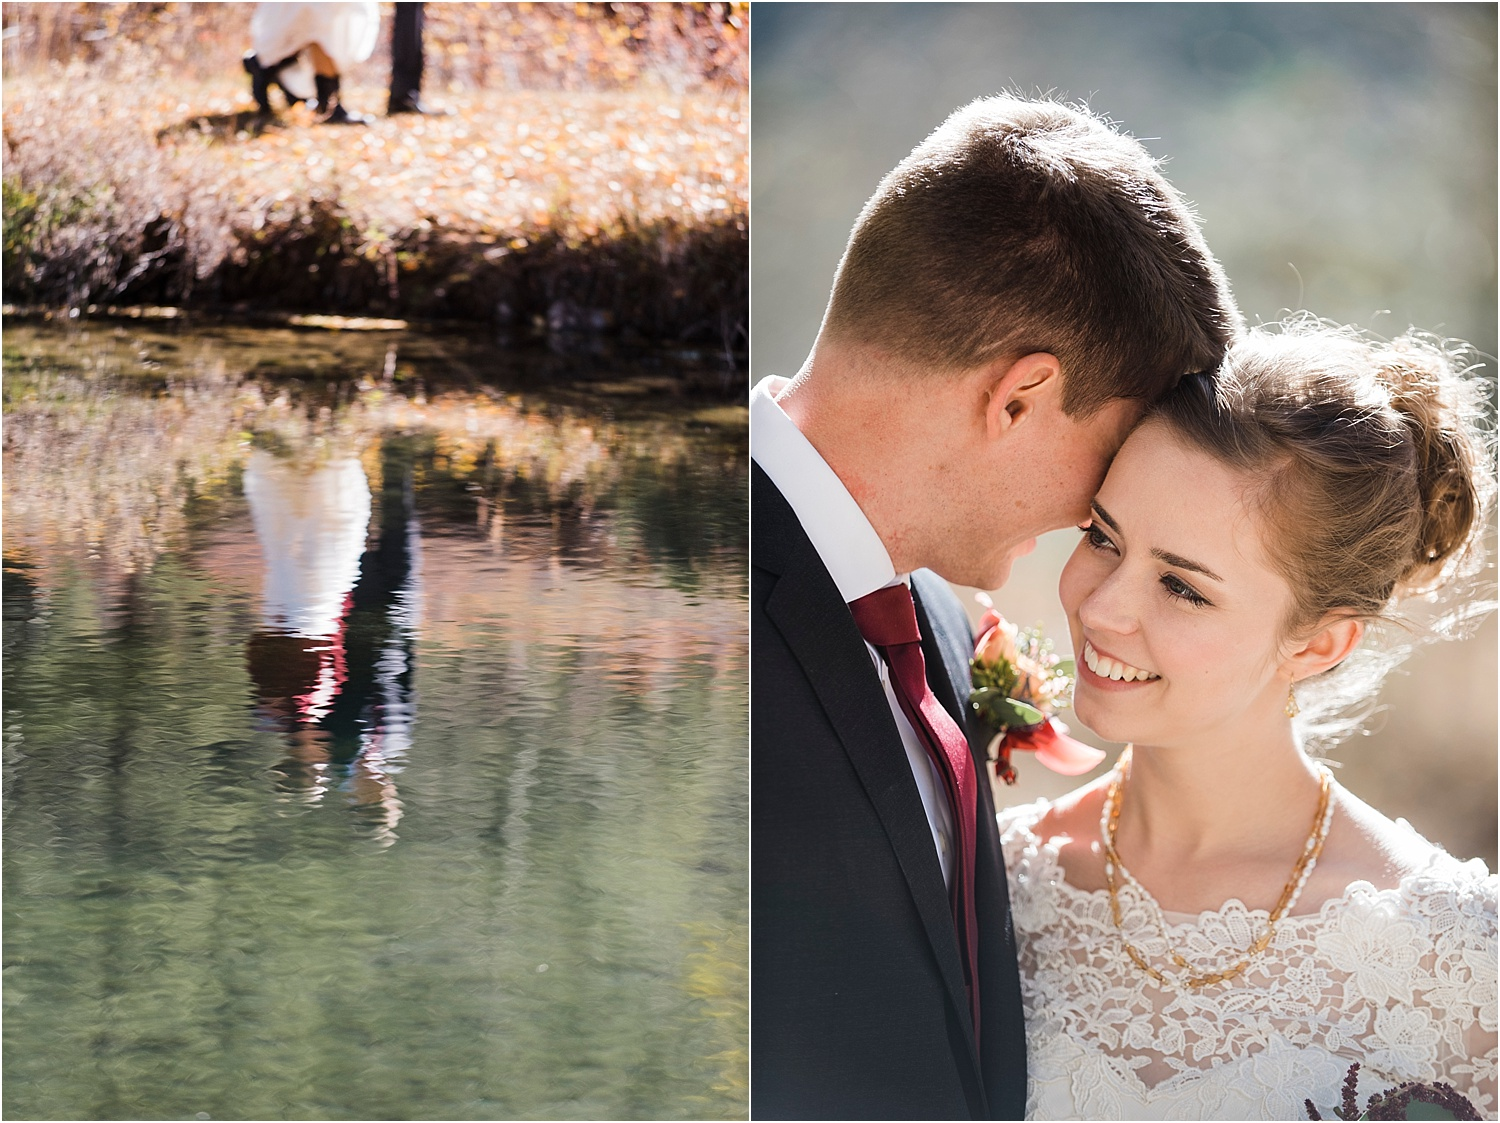 Buena_Vista_Destination_Wedding_Photographer_Apollo_Fields_Colorado_0004.jpg